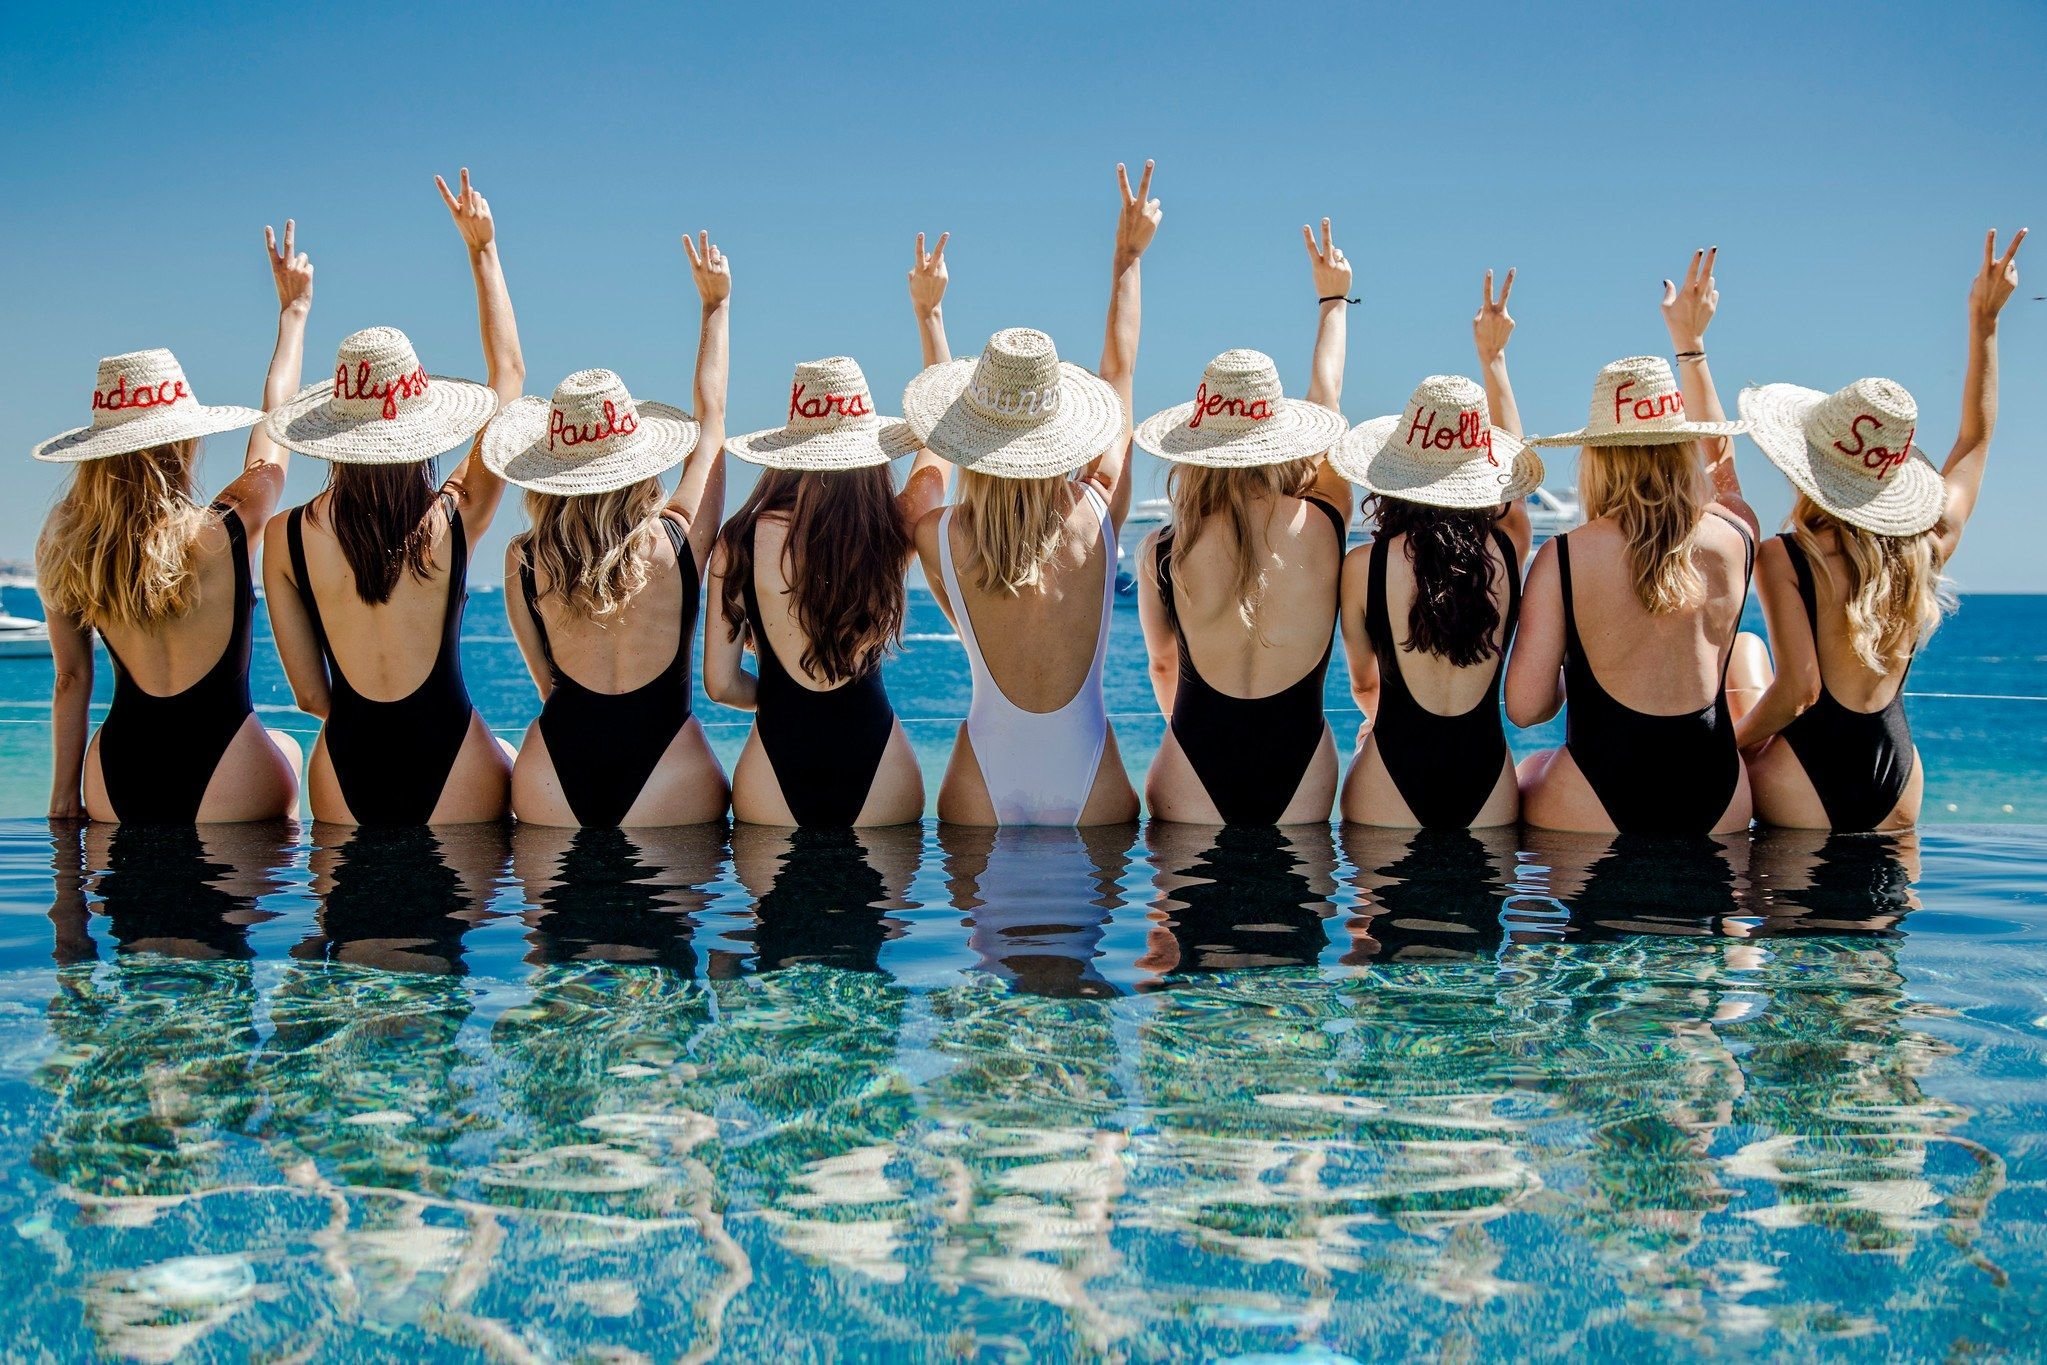 Bachelorette Party Ideas Based On Your Zodiac Sign | Hen nights ...